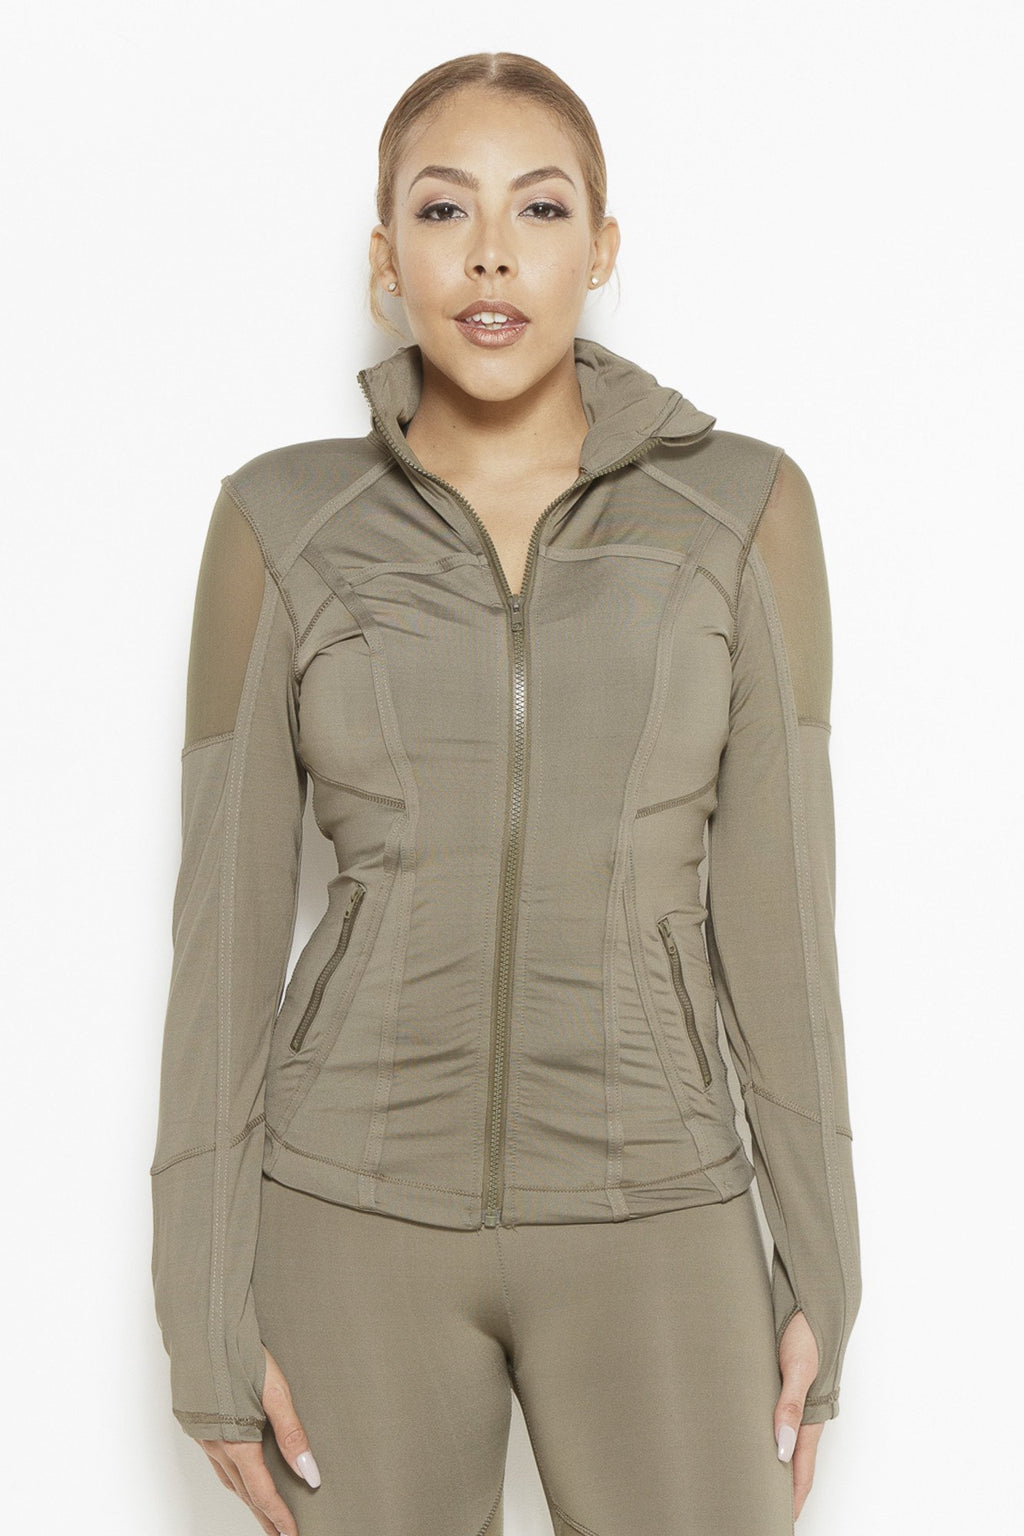 Vibes of Color Sports Jacket- Olive Green Clothing Fair Shade